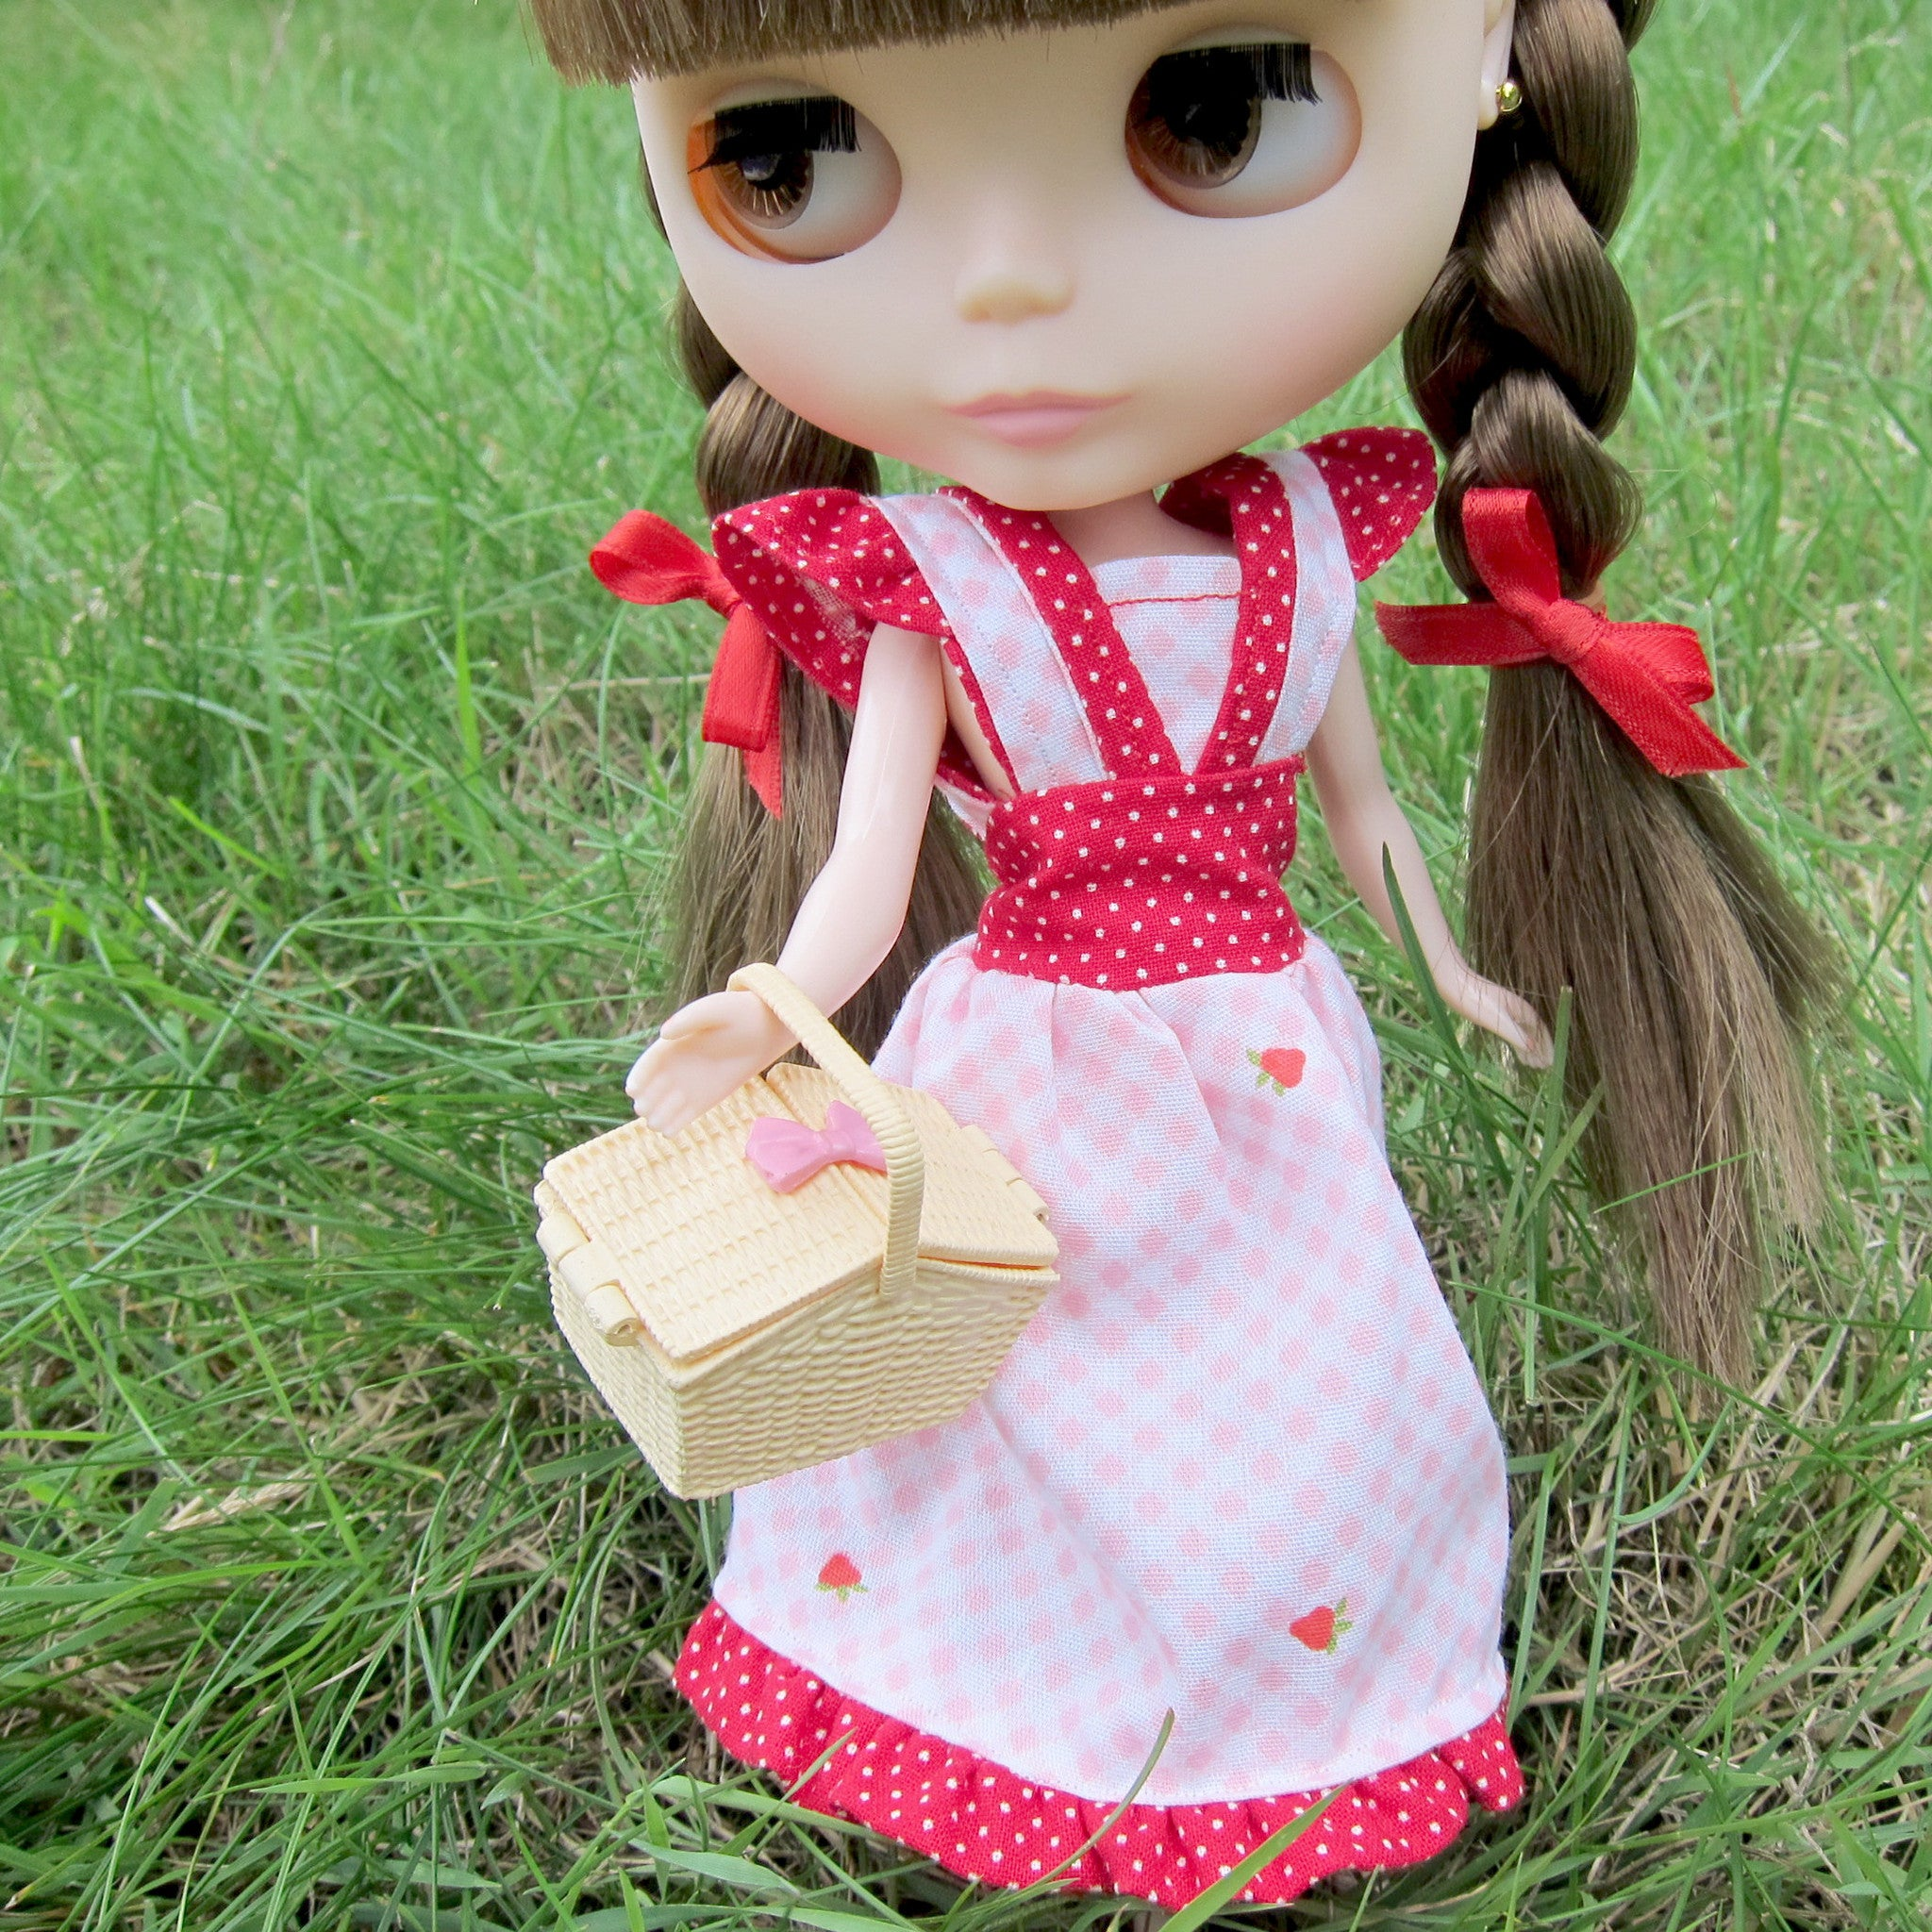 Handmade summer picnic dress for Blythe and Pullip dolls